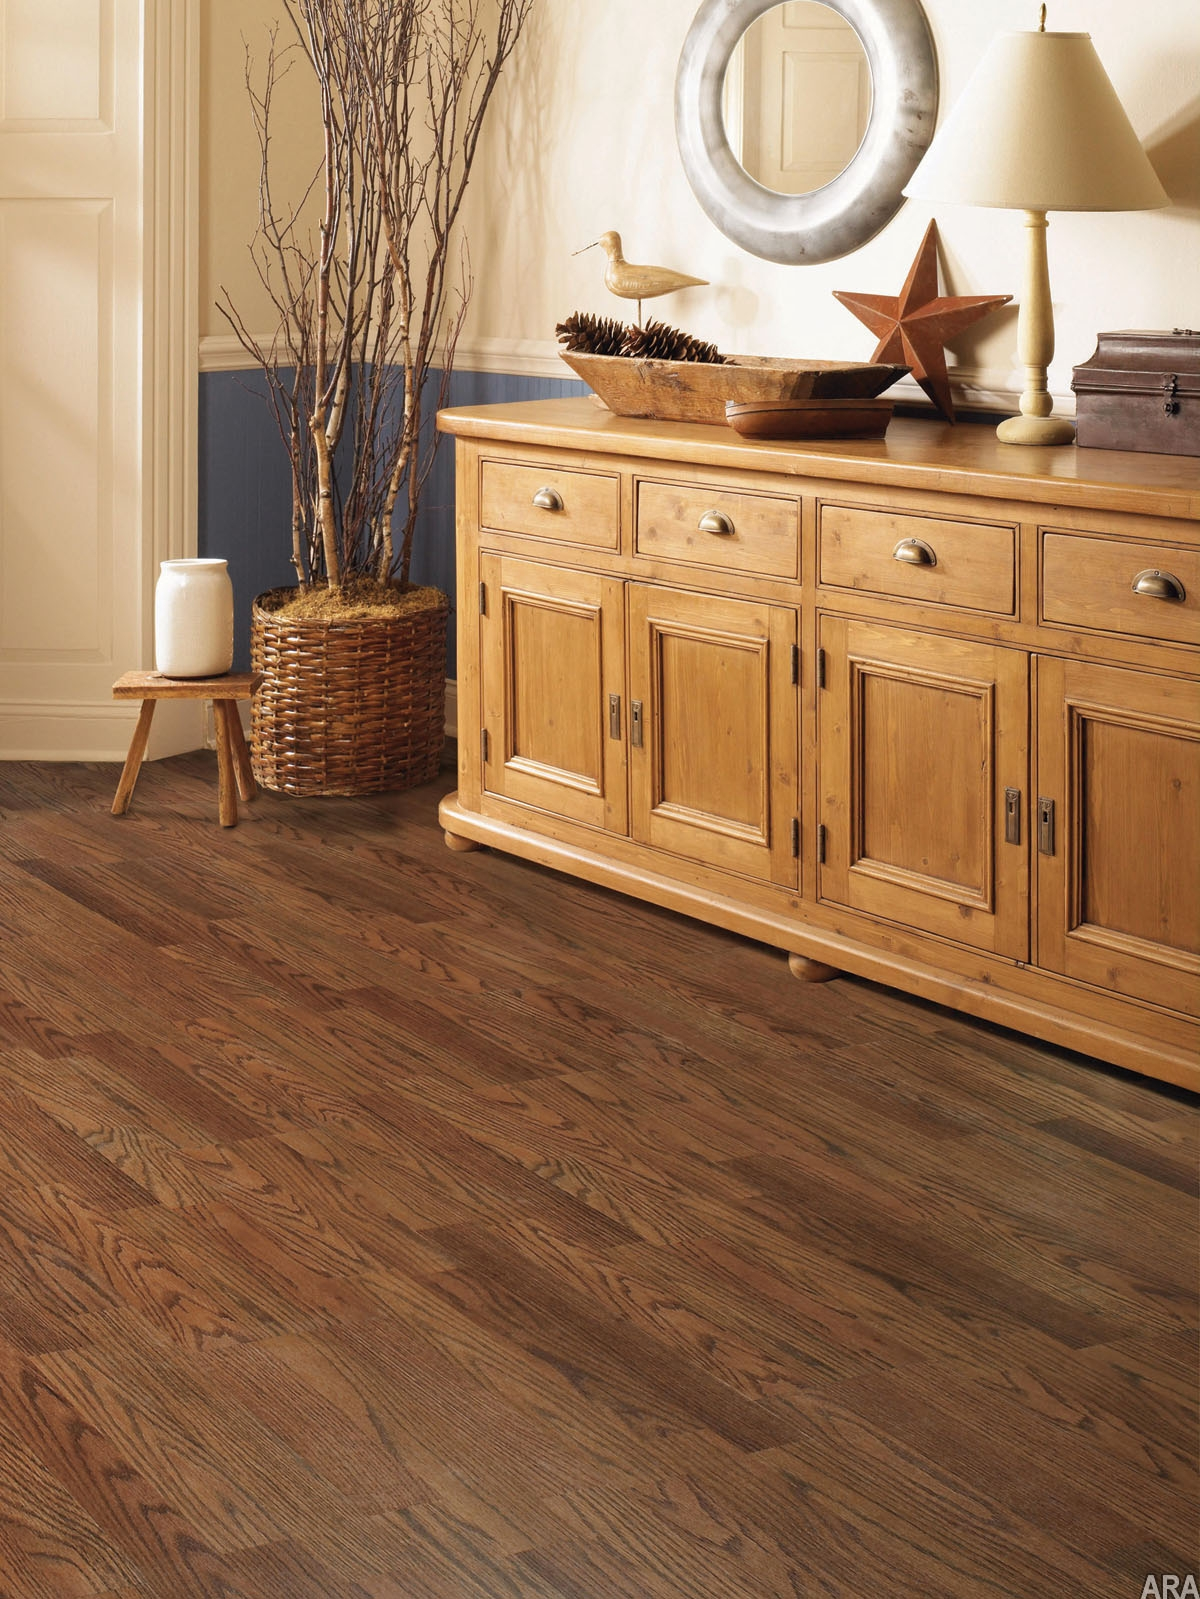 Alternative To Real Wood Flooringlaminate flooring laminate flooring is an alternative to real